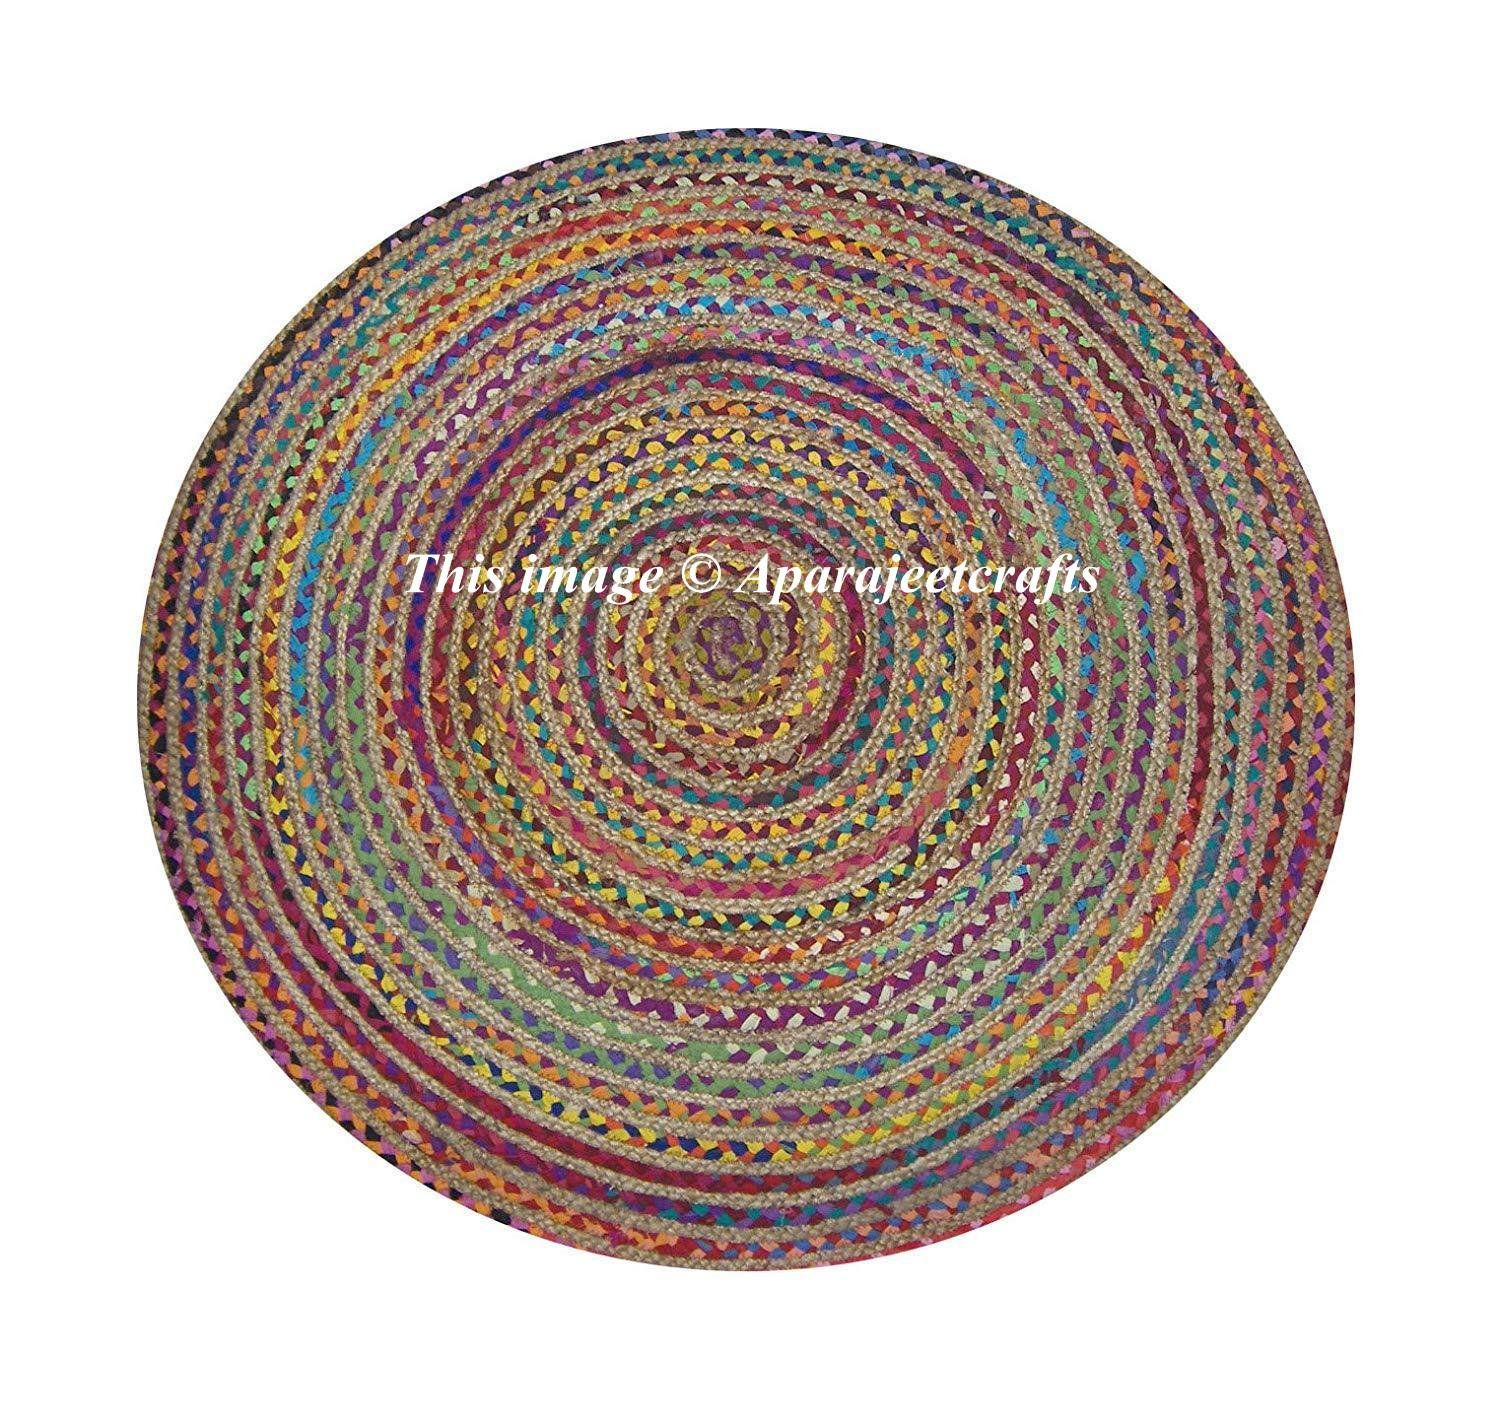 1 Hand Braided Bohemian Colorful Cotton Jute Area Rug Round Rug Multi Color Home Decor Rugs Beautiful Natural Jute Jute Area Rugs Braided Rugs Braided Jute Rug